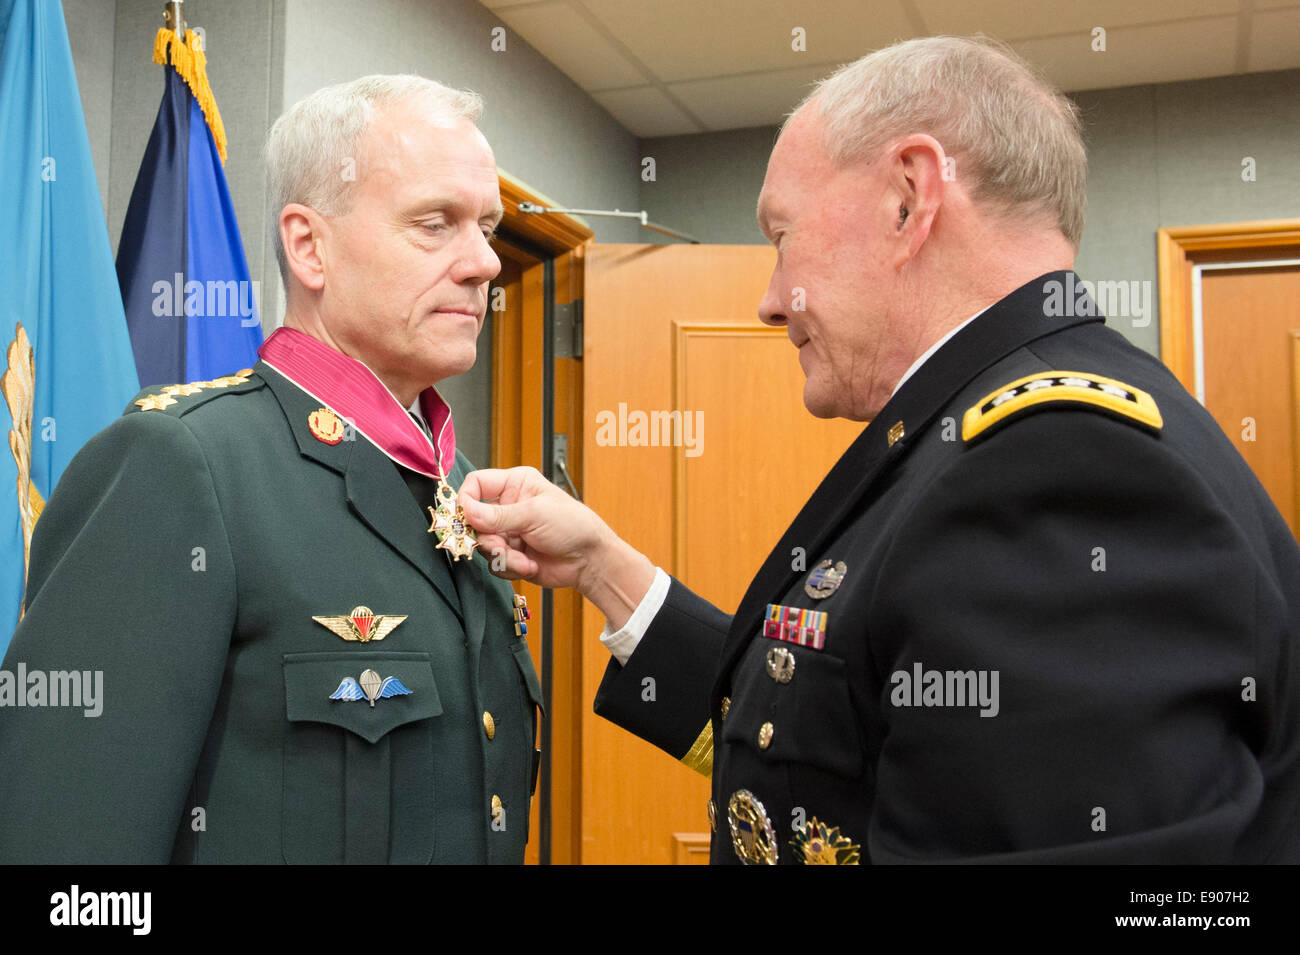 Chairman of the Joint Chiefs of Staff U.S. Army Gen. Martin E. Dempsey, right, presents a Legion of Merit medal Stock Photo